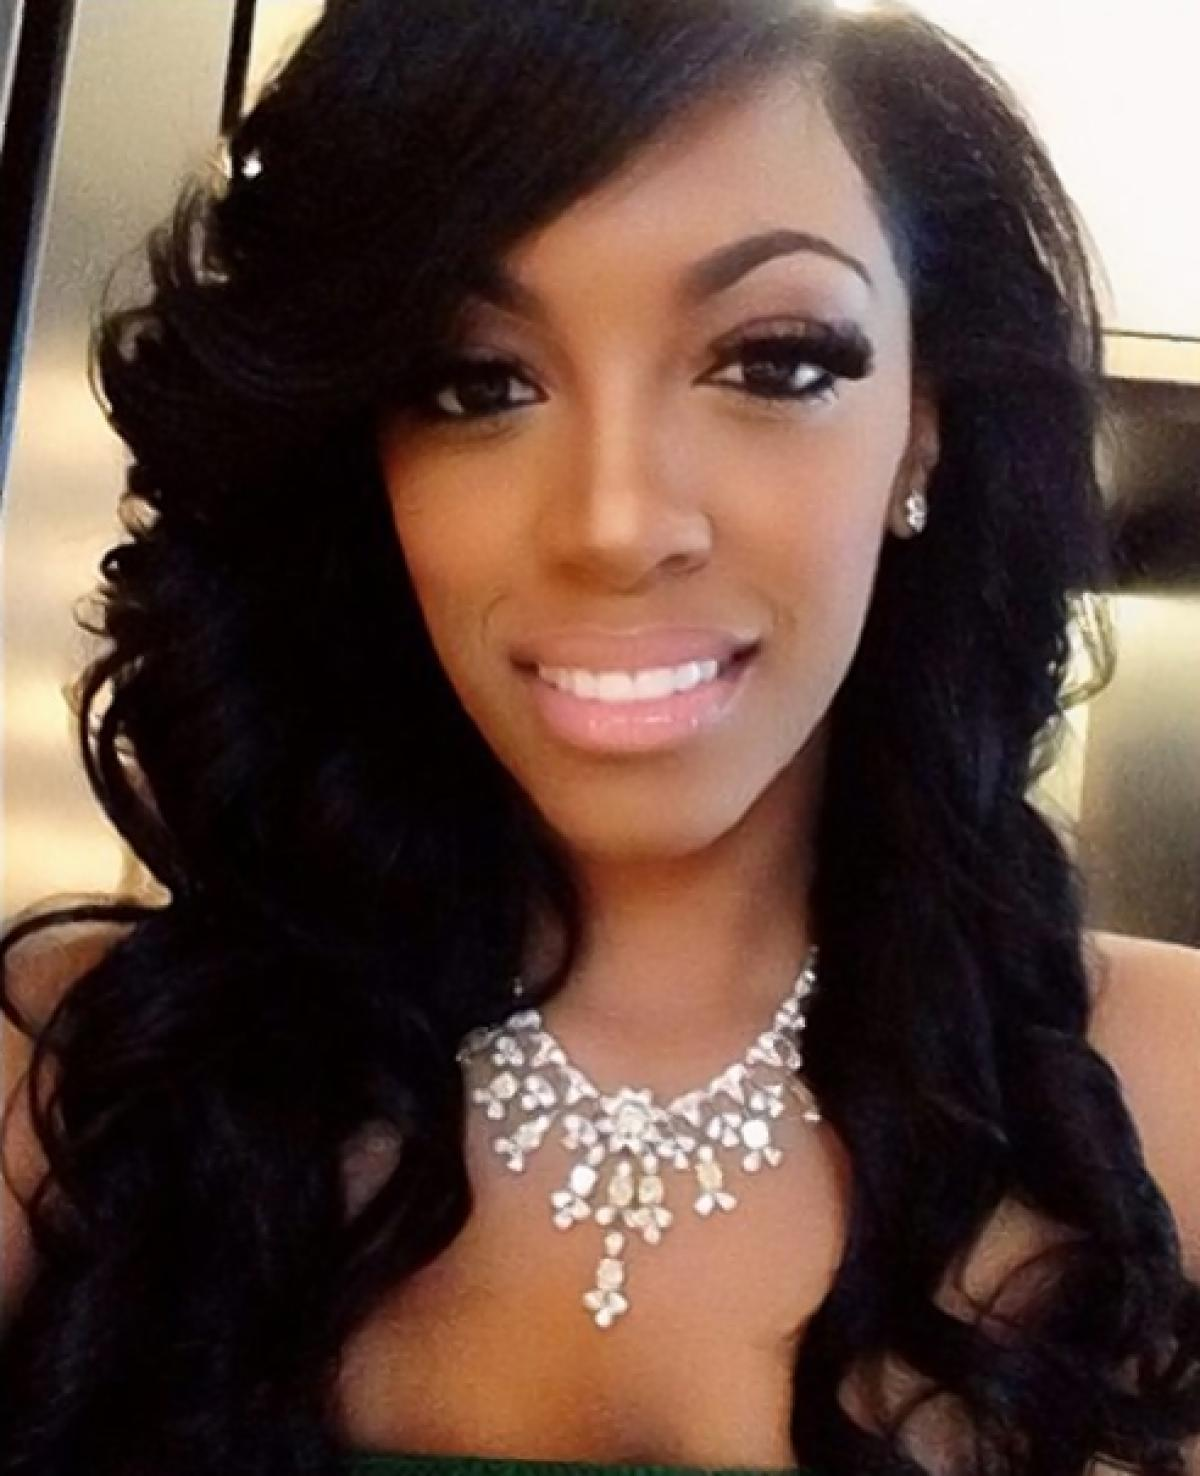 Porsha Williams Makes A Comment After Tonight's episode of RHOA